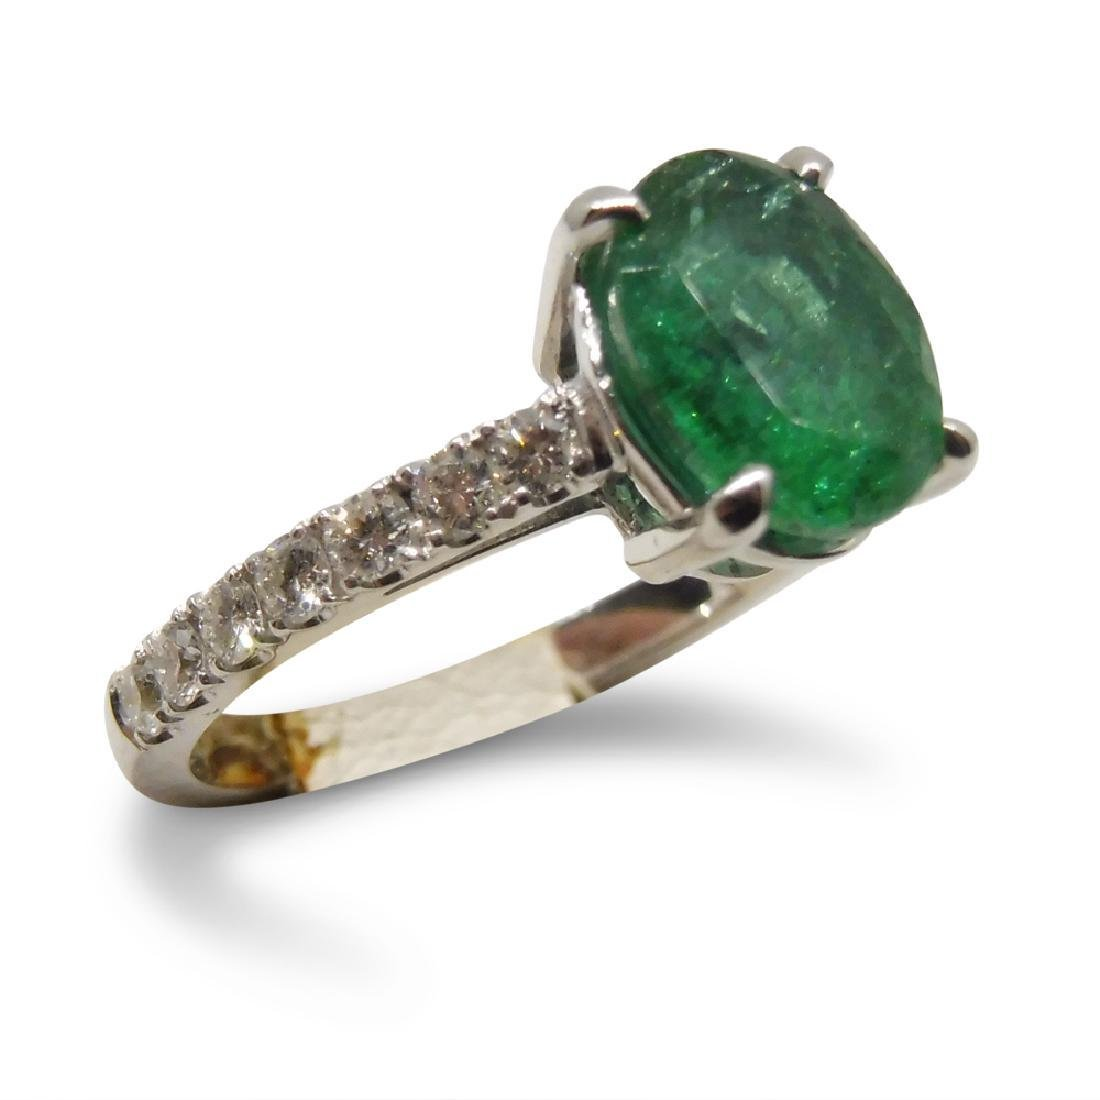 14K White Gold Emerald Diamond Ring, 1.82ct - 3